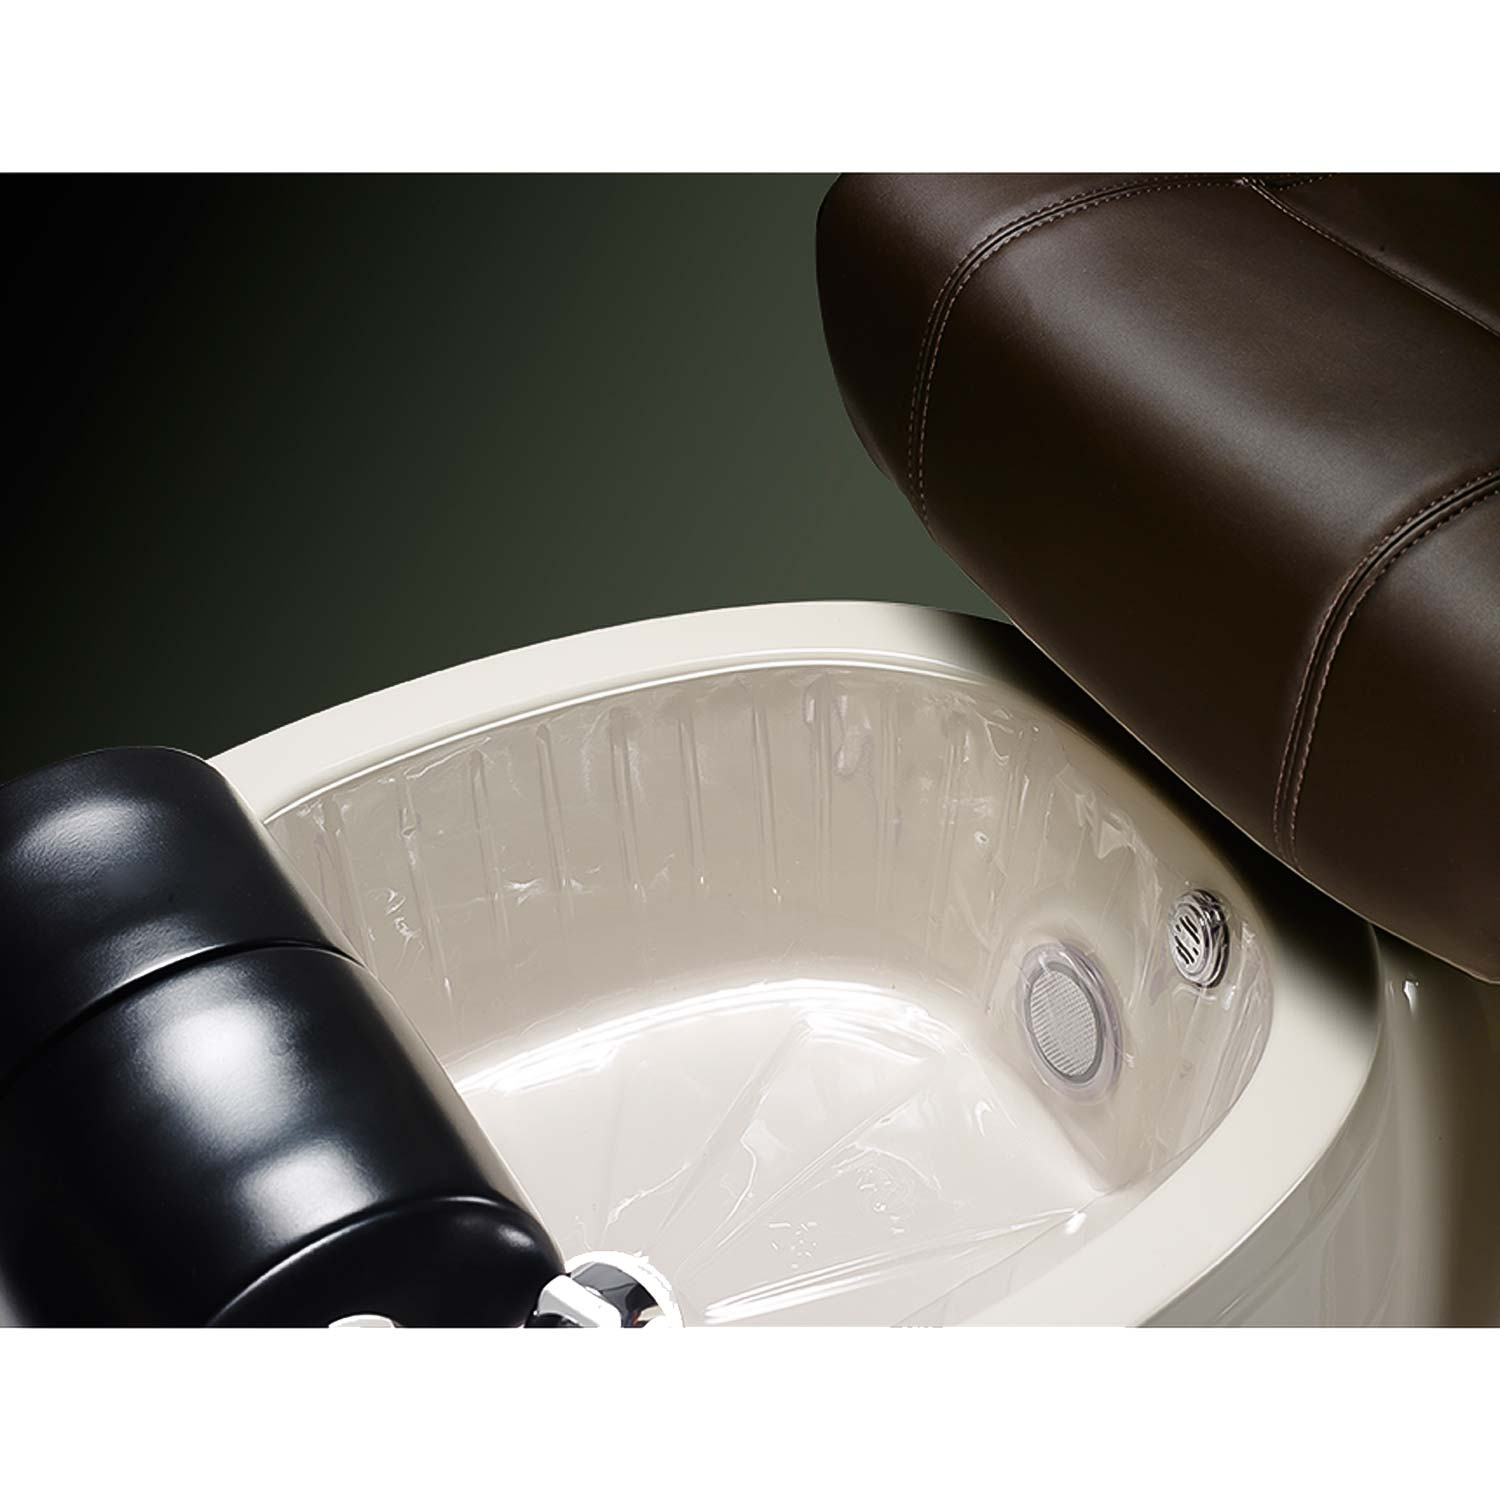 J & A Pacific MX Pipeless Whirlpool Pedicure Spa Chair alternative product image 6